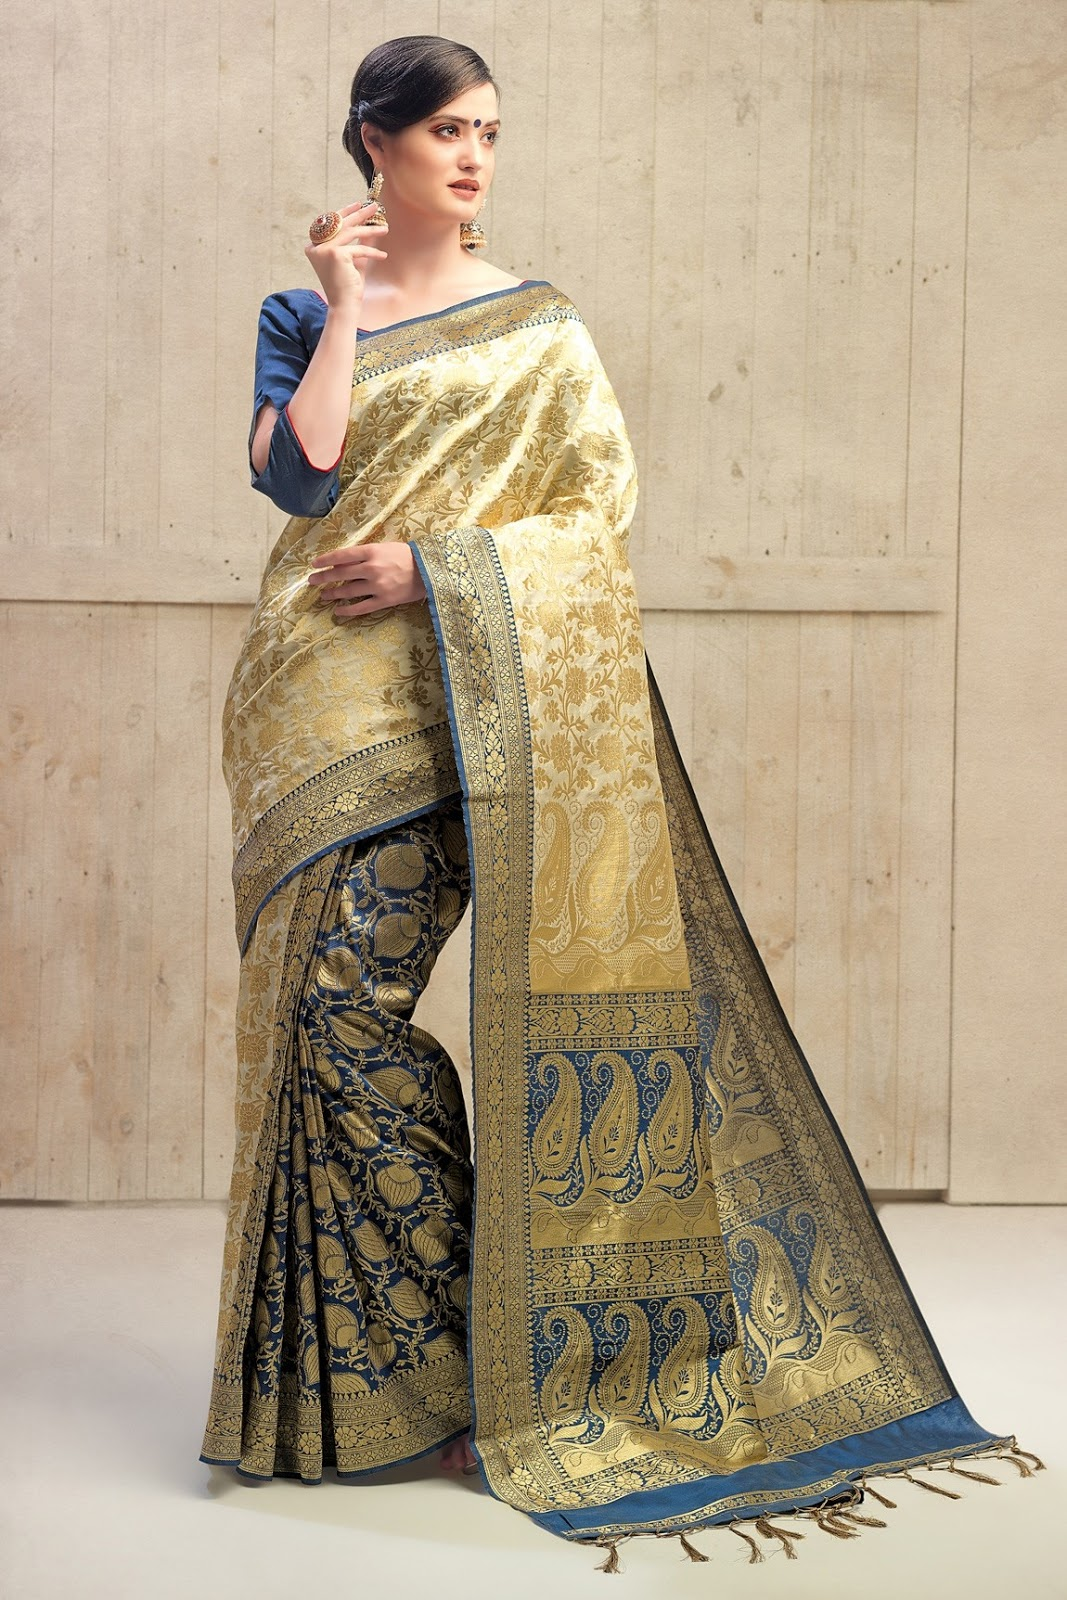 78c36855ce7754 The most loved saree of all time in Tamil Nadu is the elegant Kanchipuram  silk saree. Its uniqueness rests on its colour contrast and use of designs  that ...